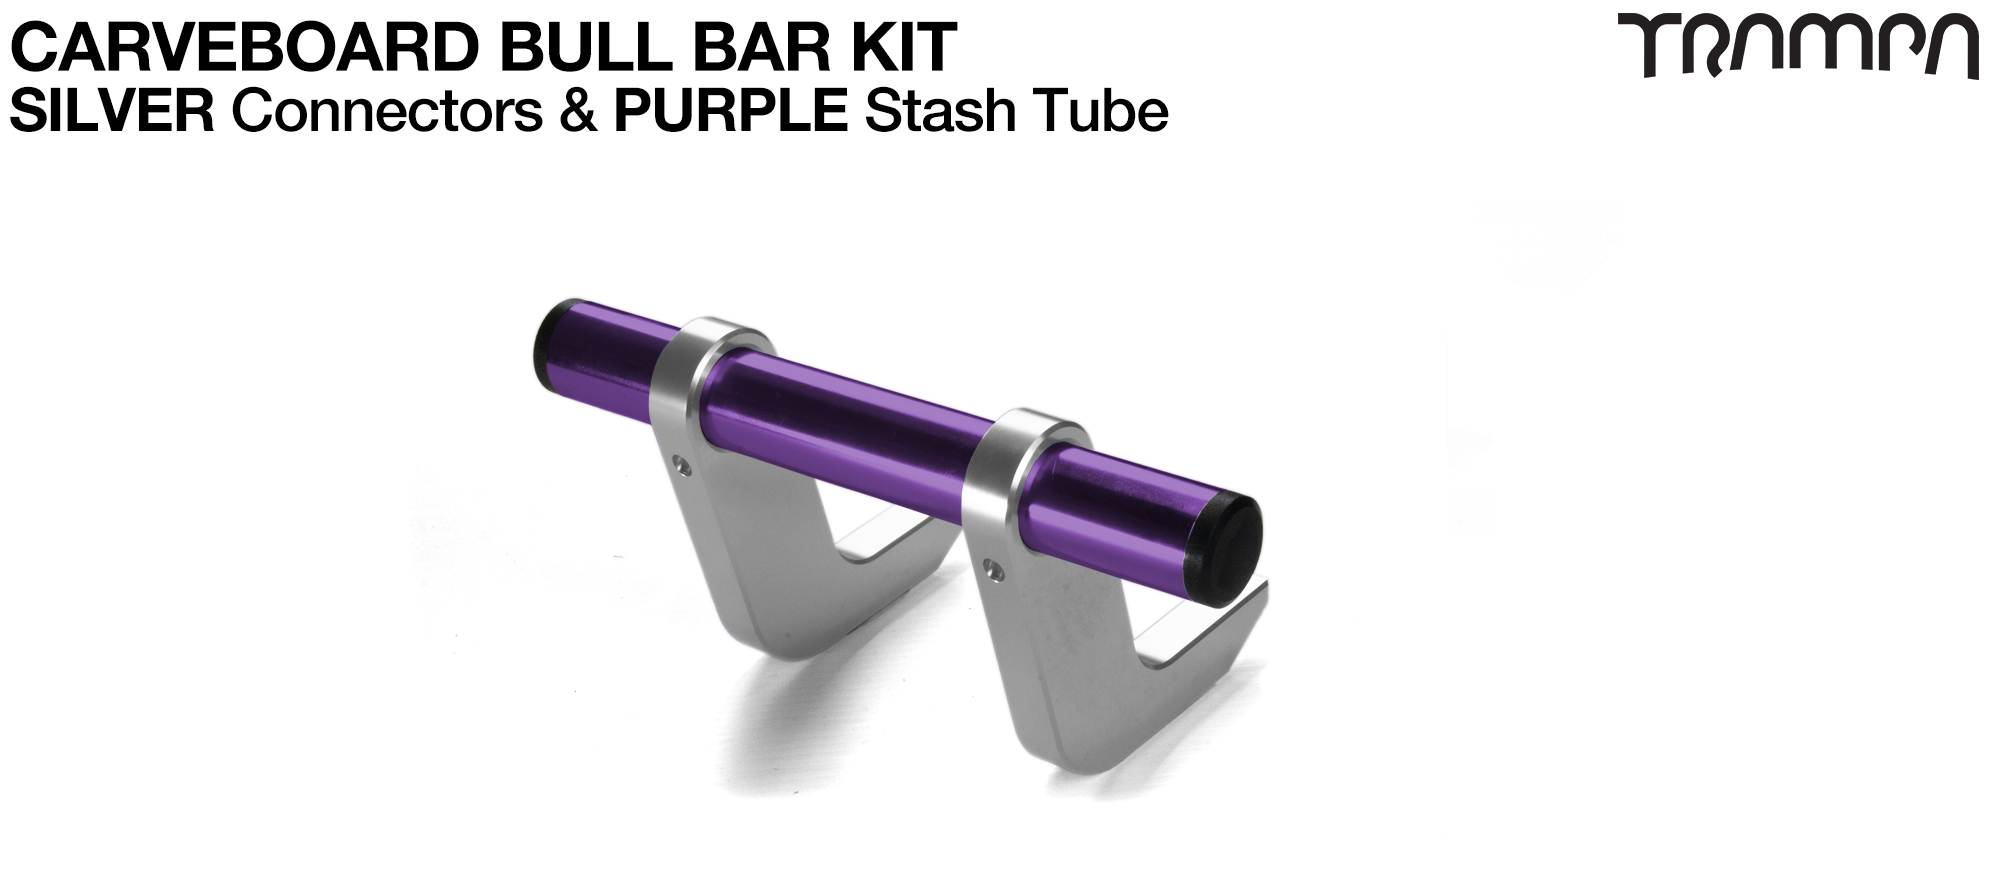 SILVER Uprights & PURPLE Crossbar BULL BARS for CARVE BOARDS using T6 Heat Treated CNC'd Aluminum Clamps, Hollow Aluminium Stash Tubes with Rubber end bungs